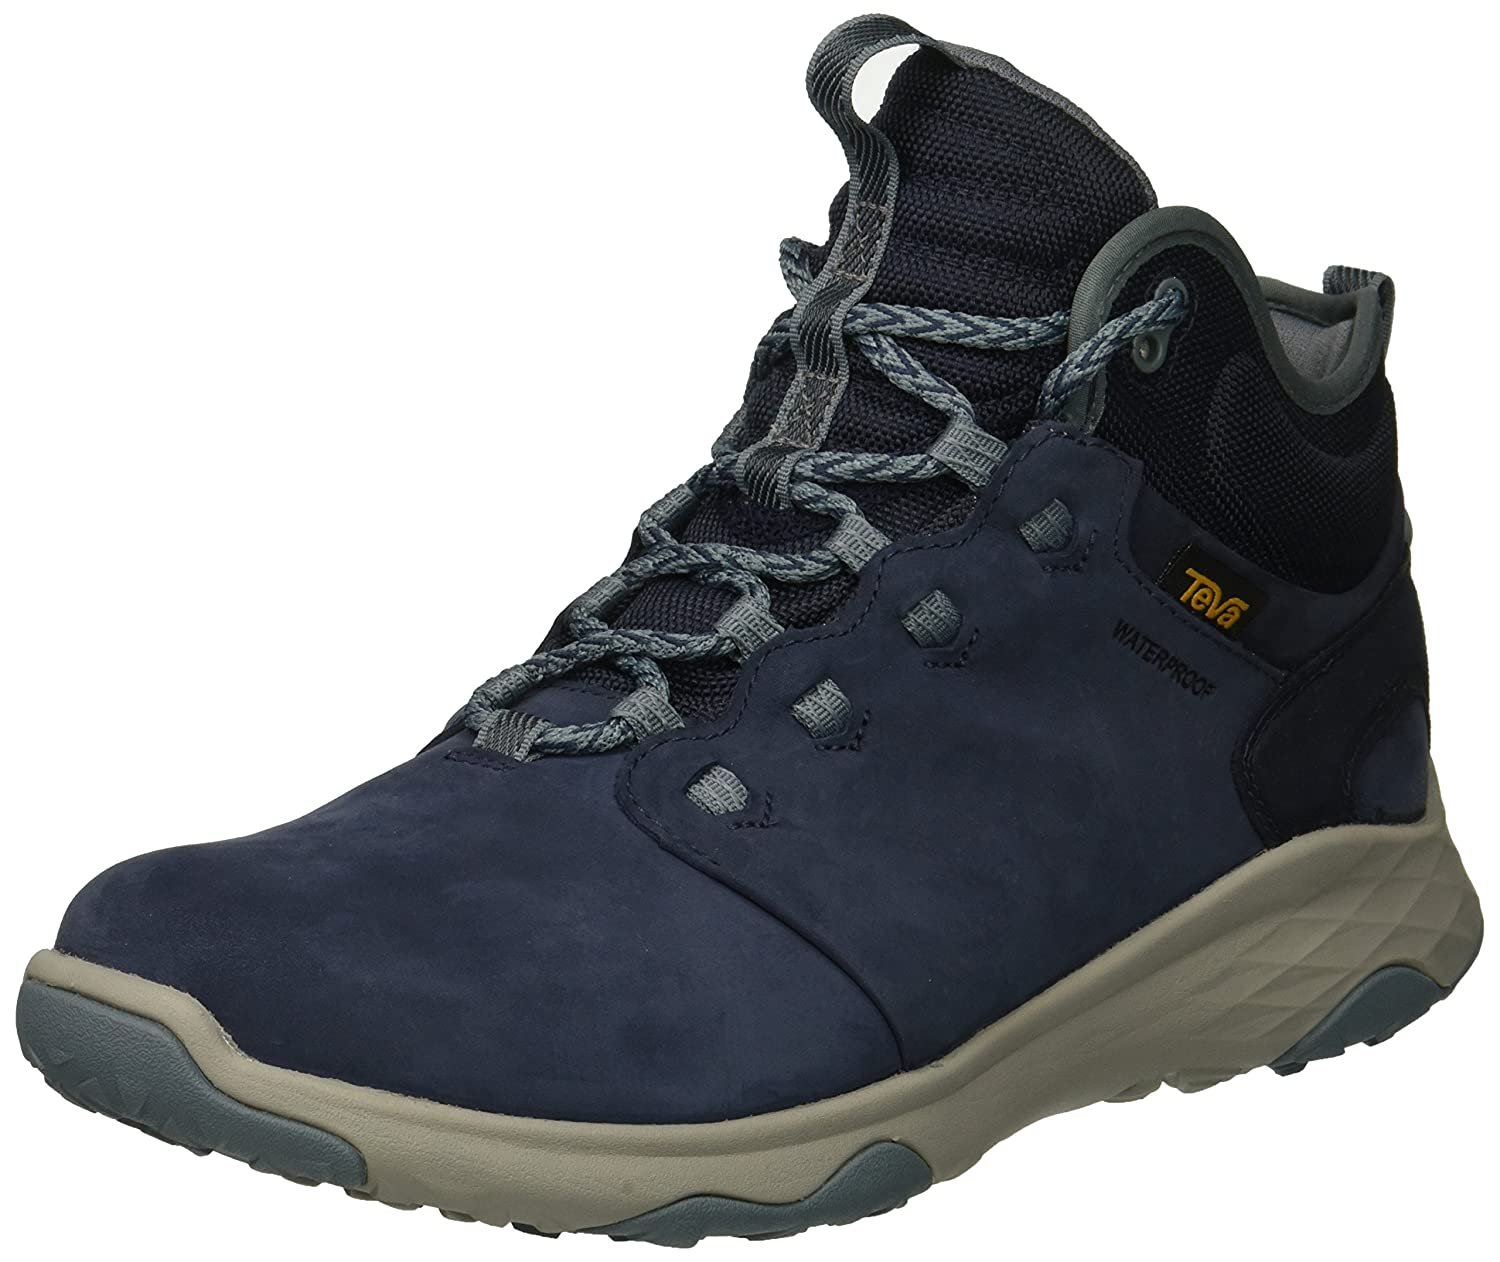 Teva Women's W Arrowood 2 Mid Waterproof Hiking Boot 1093967